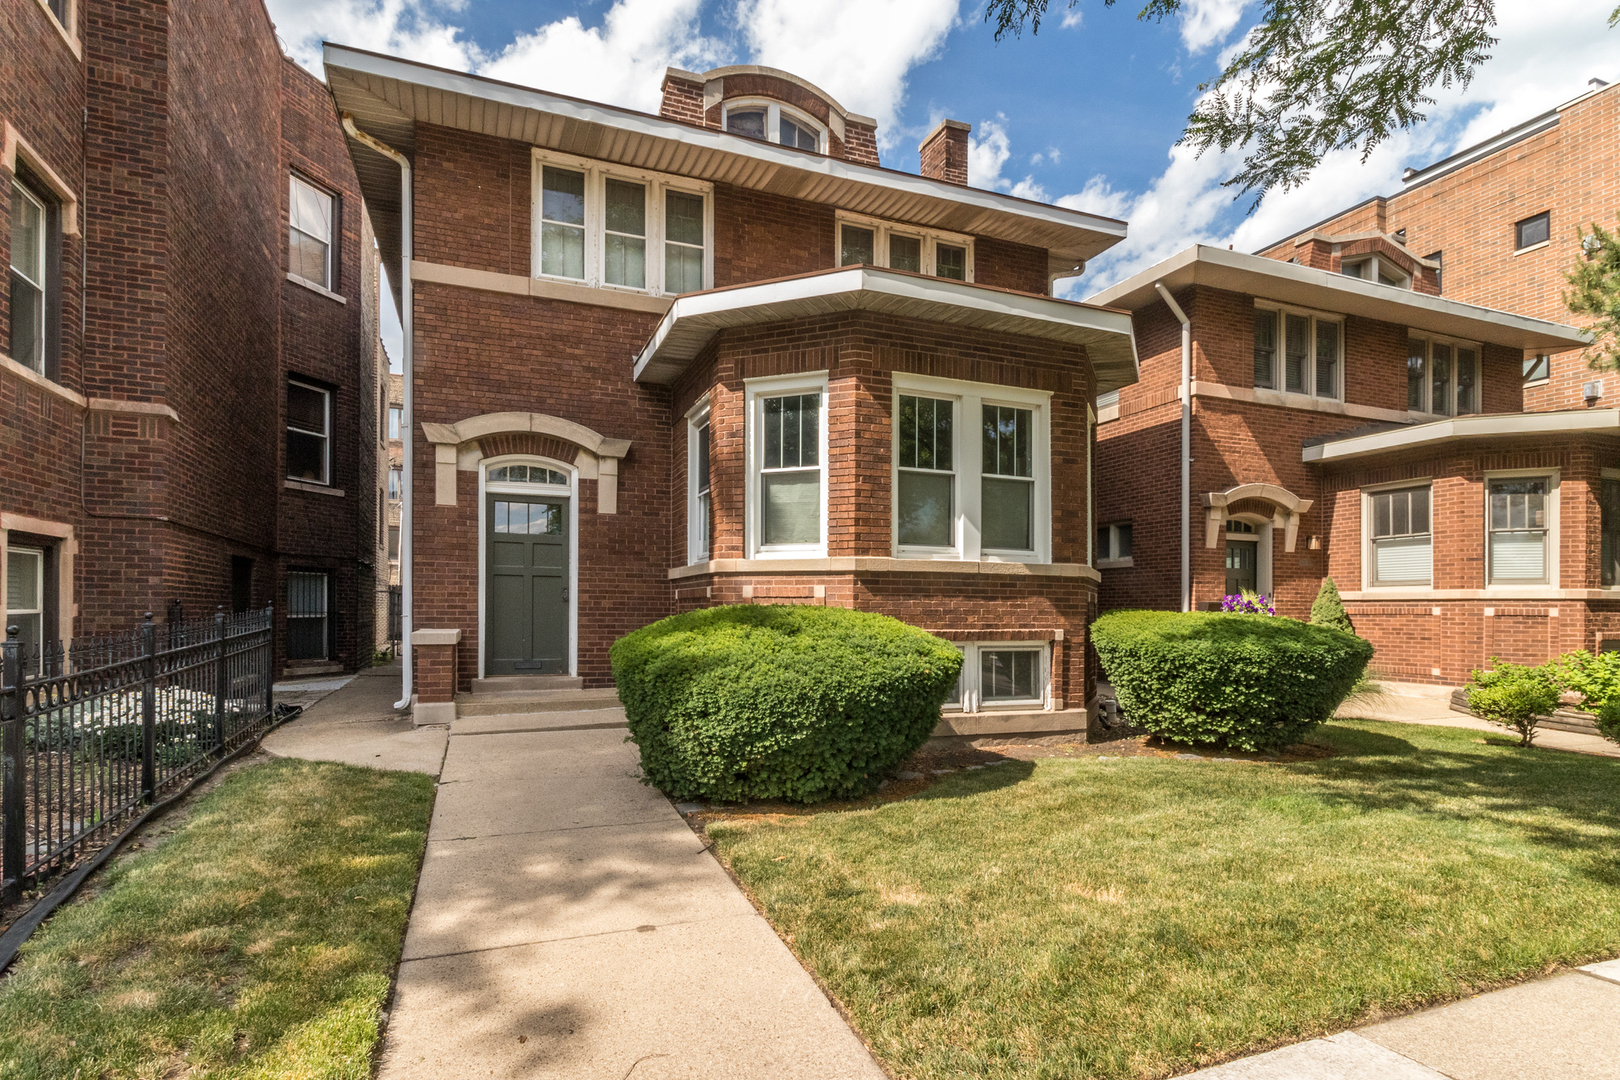 """1ST TIME ON THE MARKET IN OVER 60 YEARS. CUSTOM BUILD BRICK 2-STORY 4 BEDROOM, 1 1/2 BATHROOM DIRECTLY ACROSS THE STREET FROM WINNEMAC PARK. NEW BOILER & A/C INSTALLED IN 2014. ROOF IN 2015. BASEMENT FLOOD GATE INSTALLED IN 2008. OVER 2,400SF WITH ALL BEDROOMS LOCATED ON THE 2ND FLOOR INCLUDING 19X10 MASTER BEDROOM. MAIN LEVEL INCLUDES FORMAL LIVING ROOM (COMPLETE WITH ORIGINAL FIREPLACE AND MANTLE) & ENTRYWAY WITH ORIGINAL STAINGLASS WINDOWS. LIVING ROOM OFFERS CROWN MOLDING/FIREPLACE MANTLE & ROW OF WINDOWS OFFERING TONS OF SUNLIGHT. FORMAL LIVING ROOM JUST OFF THE KITCHEN. KITCHEN HAS 32"""" CABINETS/COOKTOP W/SEPARATE OVEN AND PREP ISLAND. CONCRETE PRIVATE YARD LEADS TO 3 CAR DETACHED GARAGE. BASEMENT IS UNFINISHED. 1ST AND 2ND FLOOR HAVE ORIGINAL HARDWOOD FLOORING. PROPERTY DOES NEED WORK AND WILL BE SOLD IN AS-IS CONDITION."""